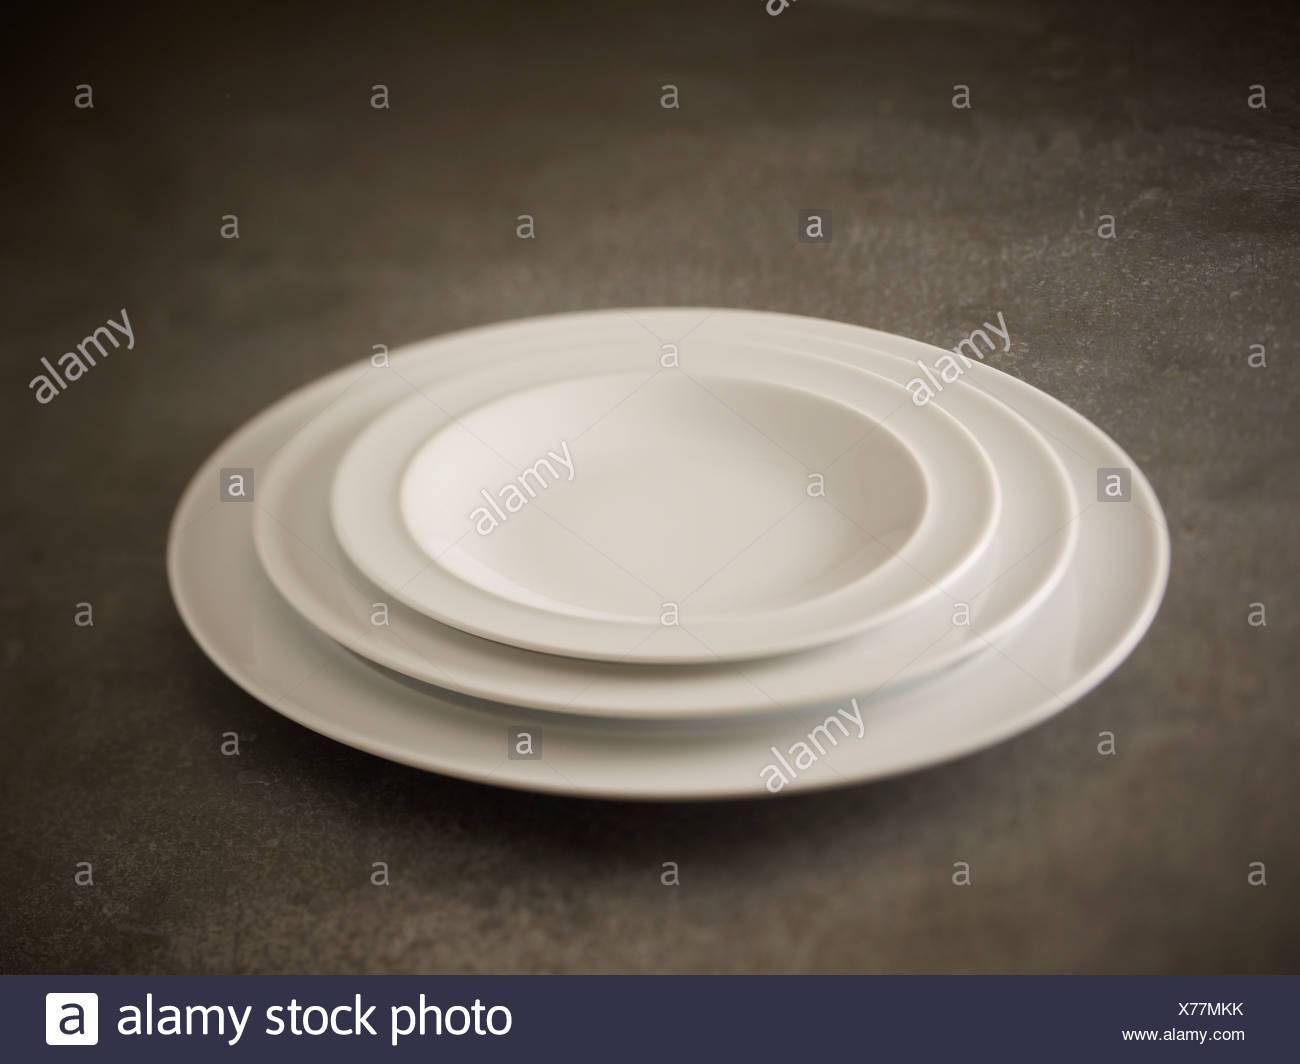 Plate stack - Stock Image